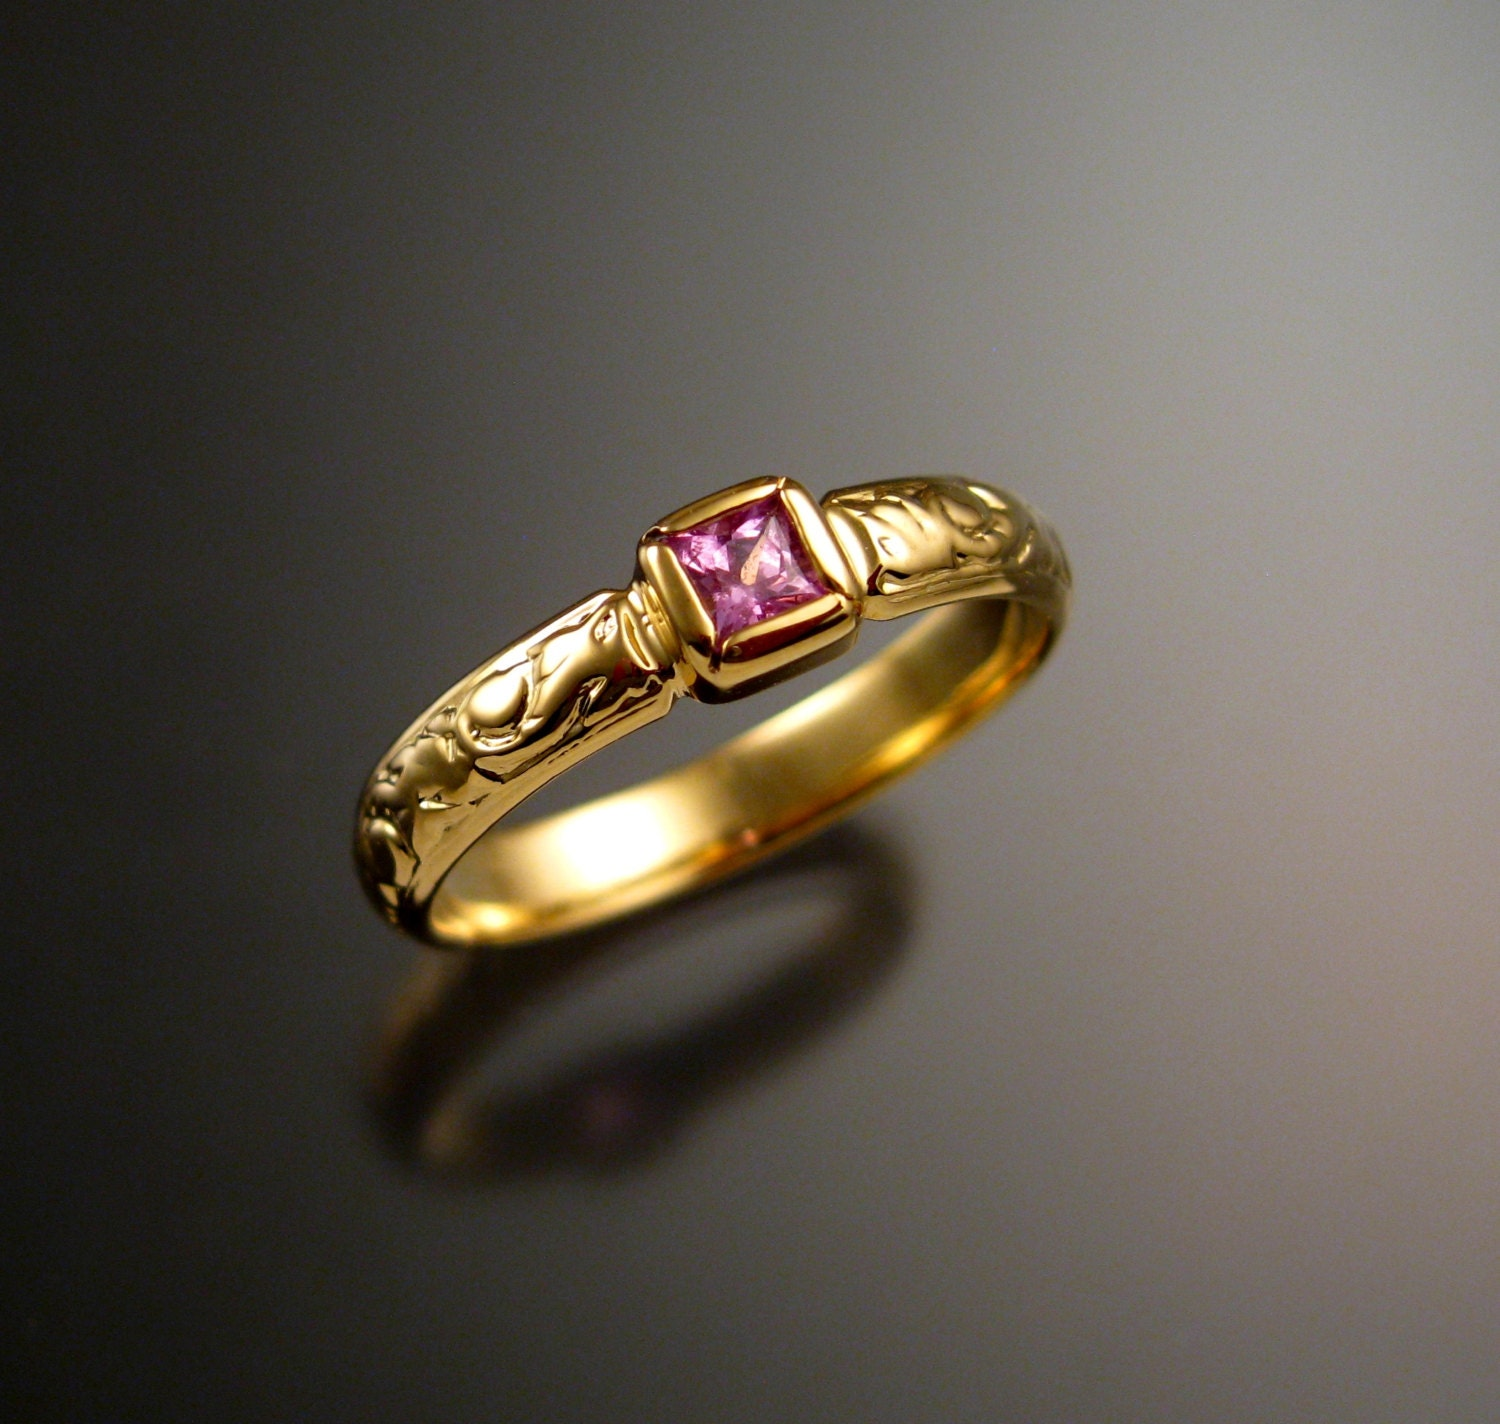 Pink Sapphire Wedding Ring 14k Yellow Gold Victorian Bezel Set Natural Princess Cut Diamond Substitute Made To Order In Your Size